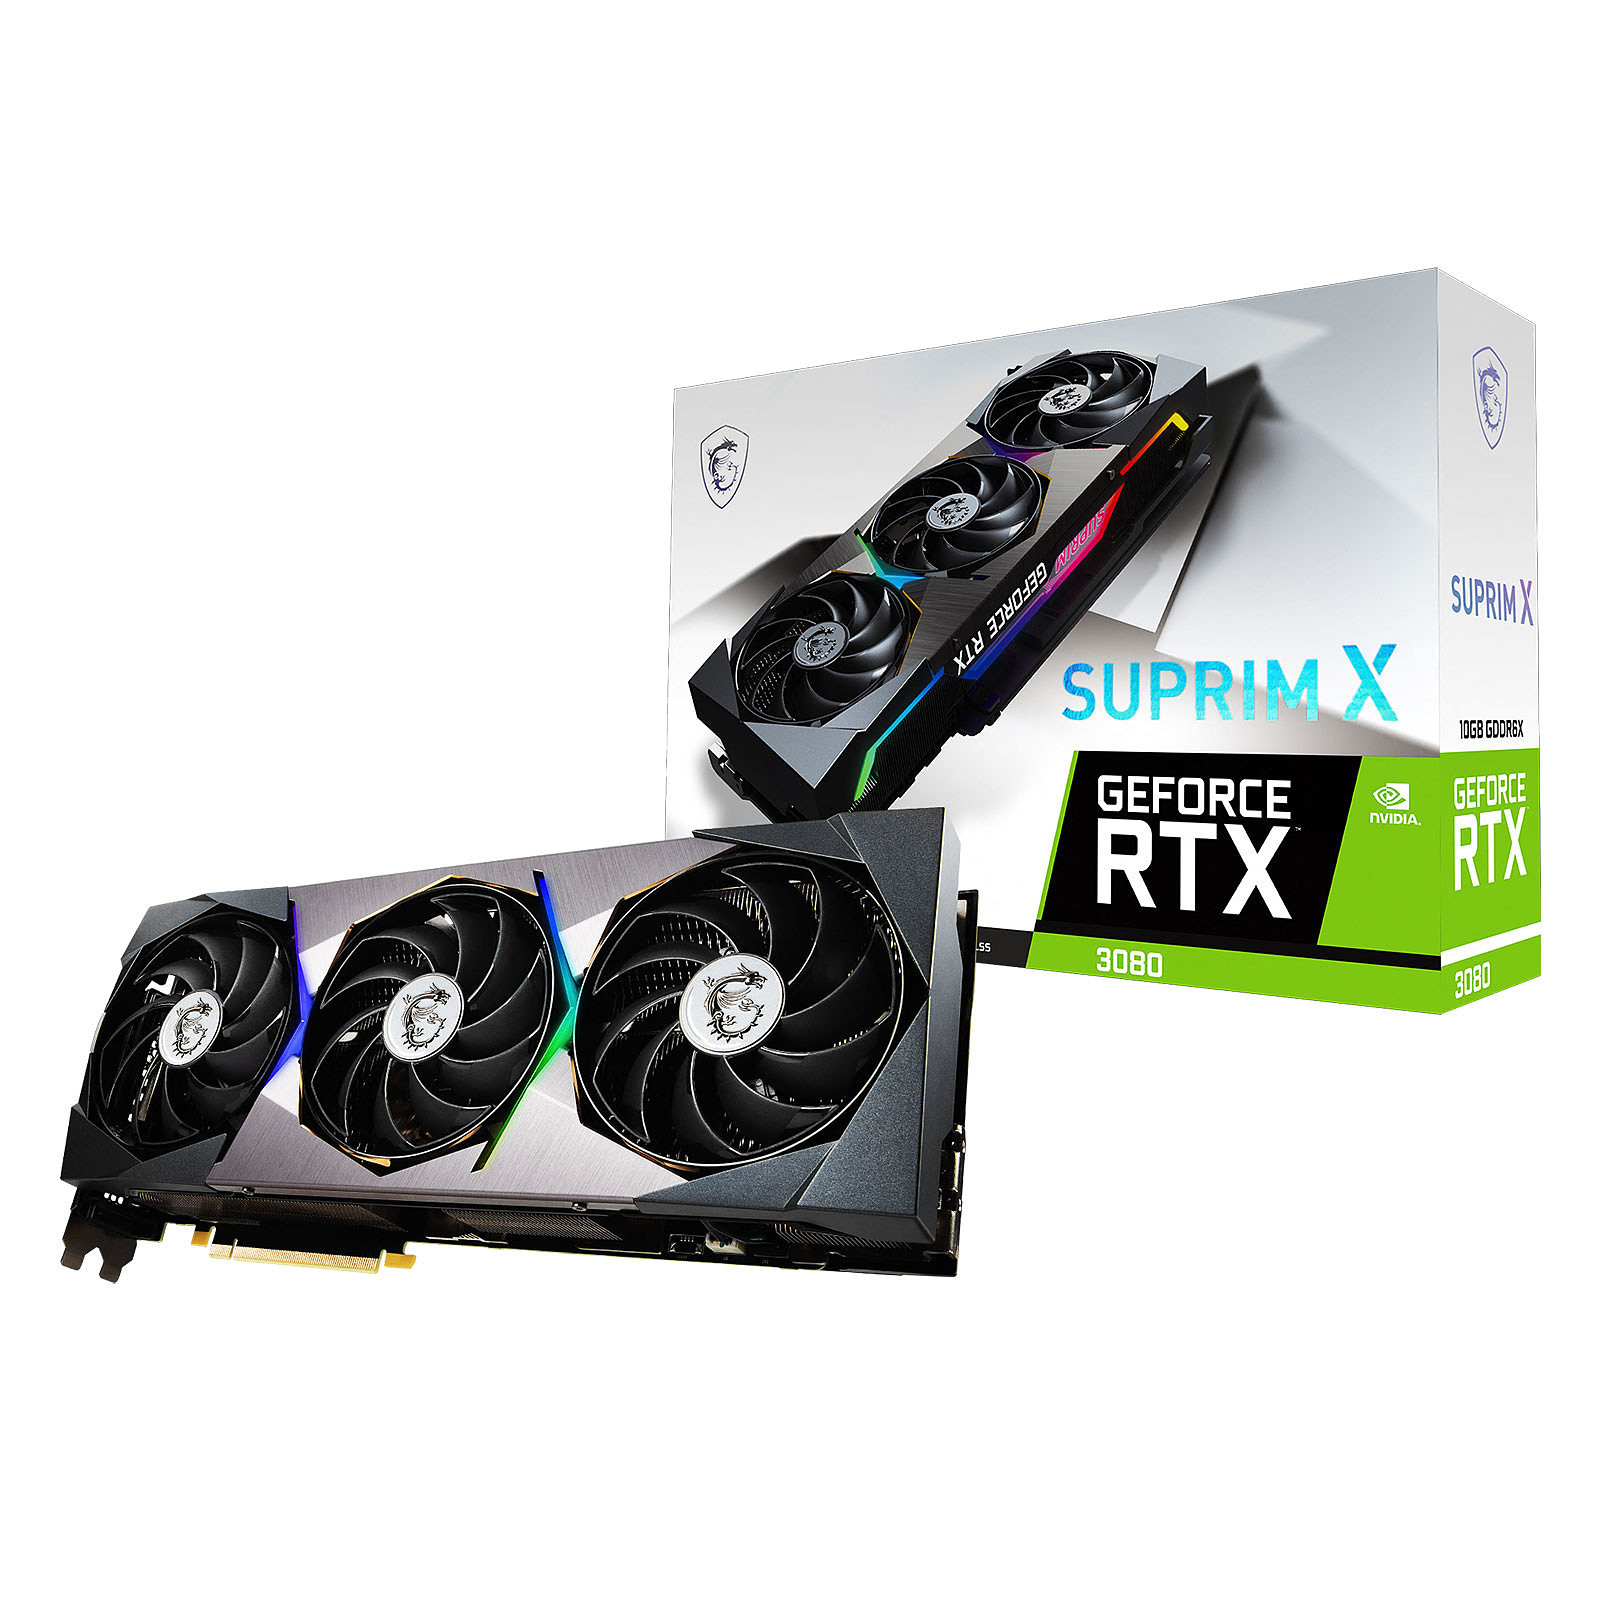 GeForce RTX 3080 SUPRIM X - Triple Fan - 10Go